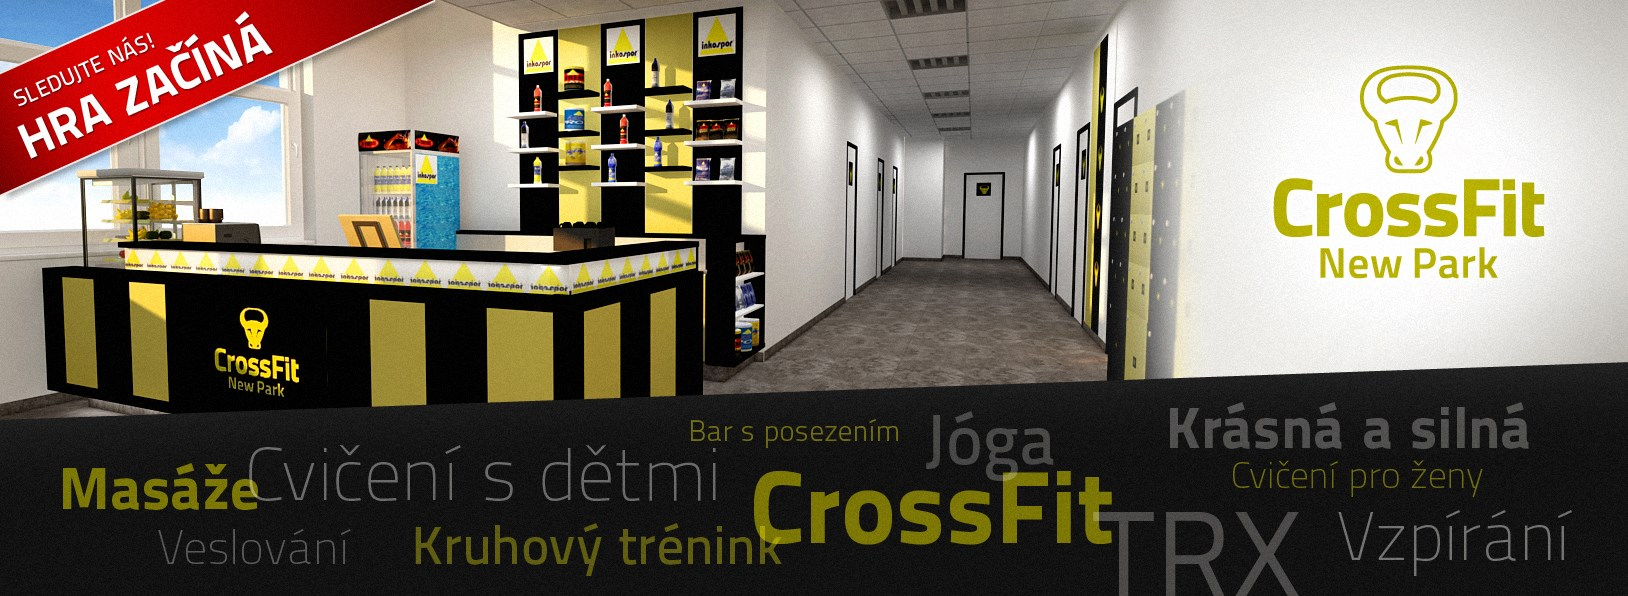 crossfit new park bar